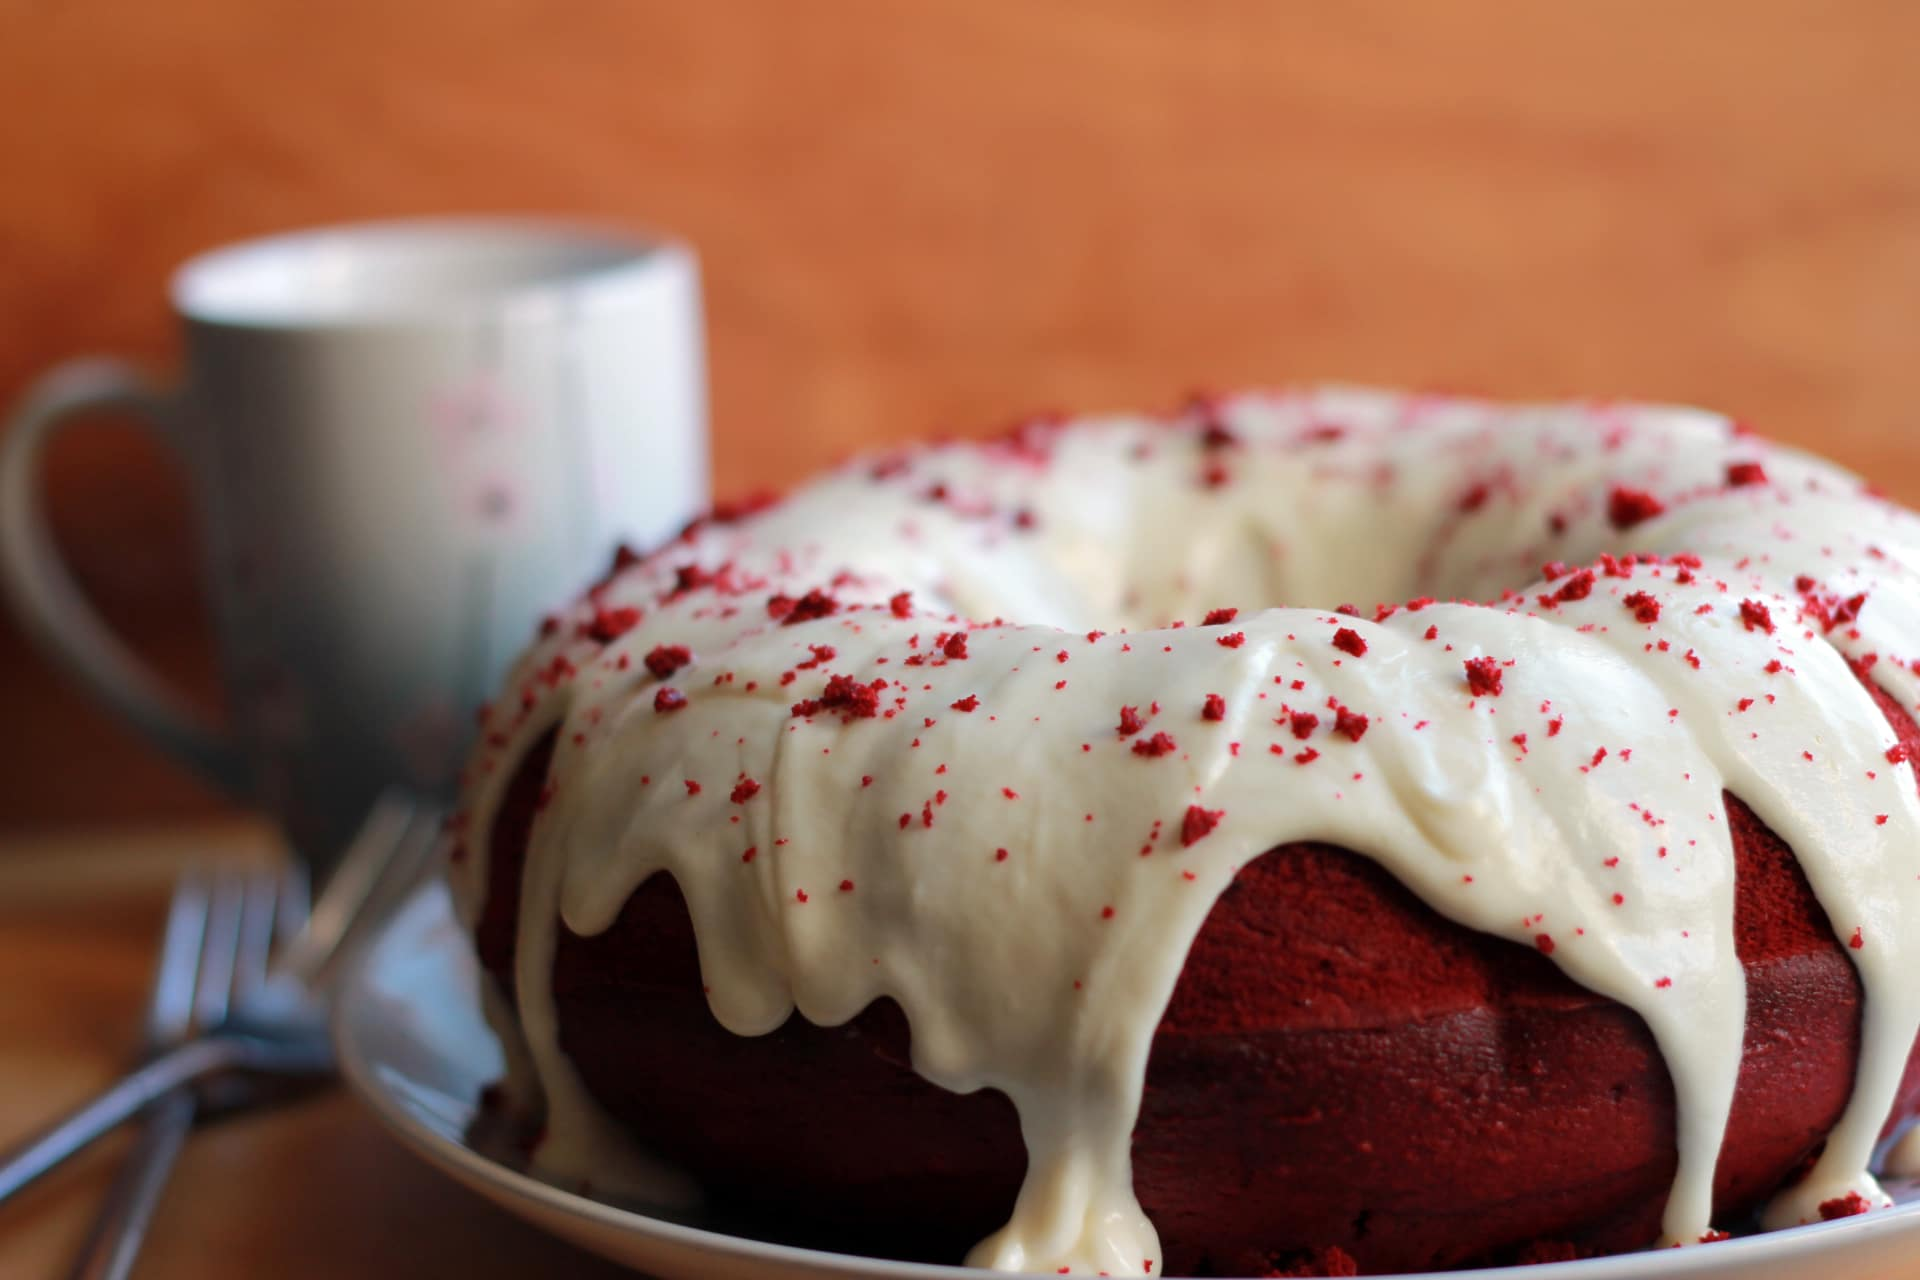 Red Velvet Bundt Cake with Cream Cheese Icing - Erren's Kitchen